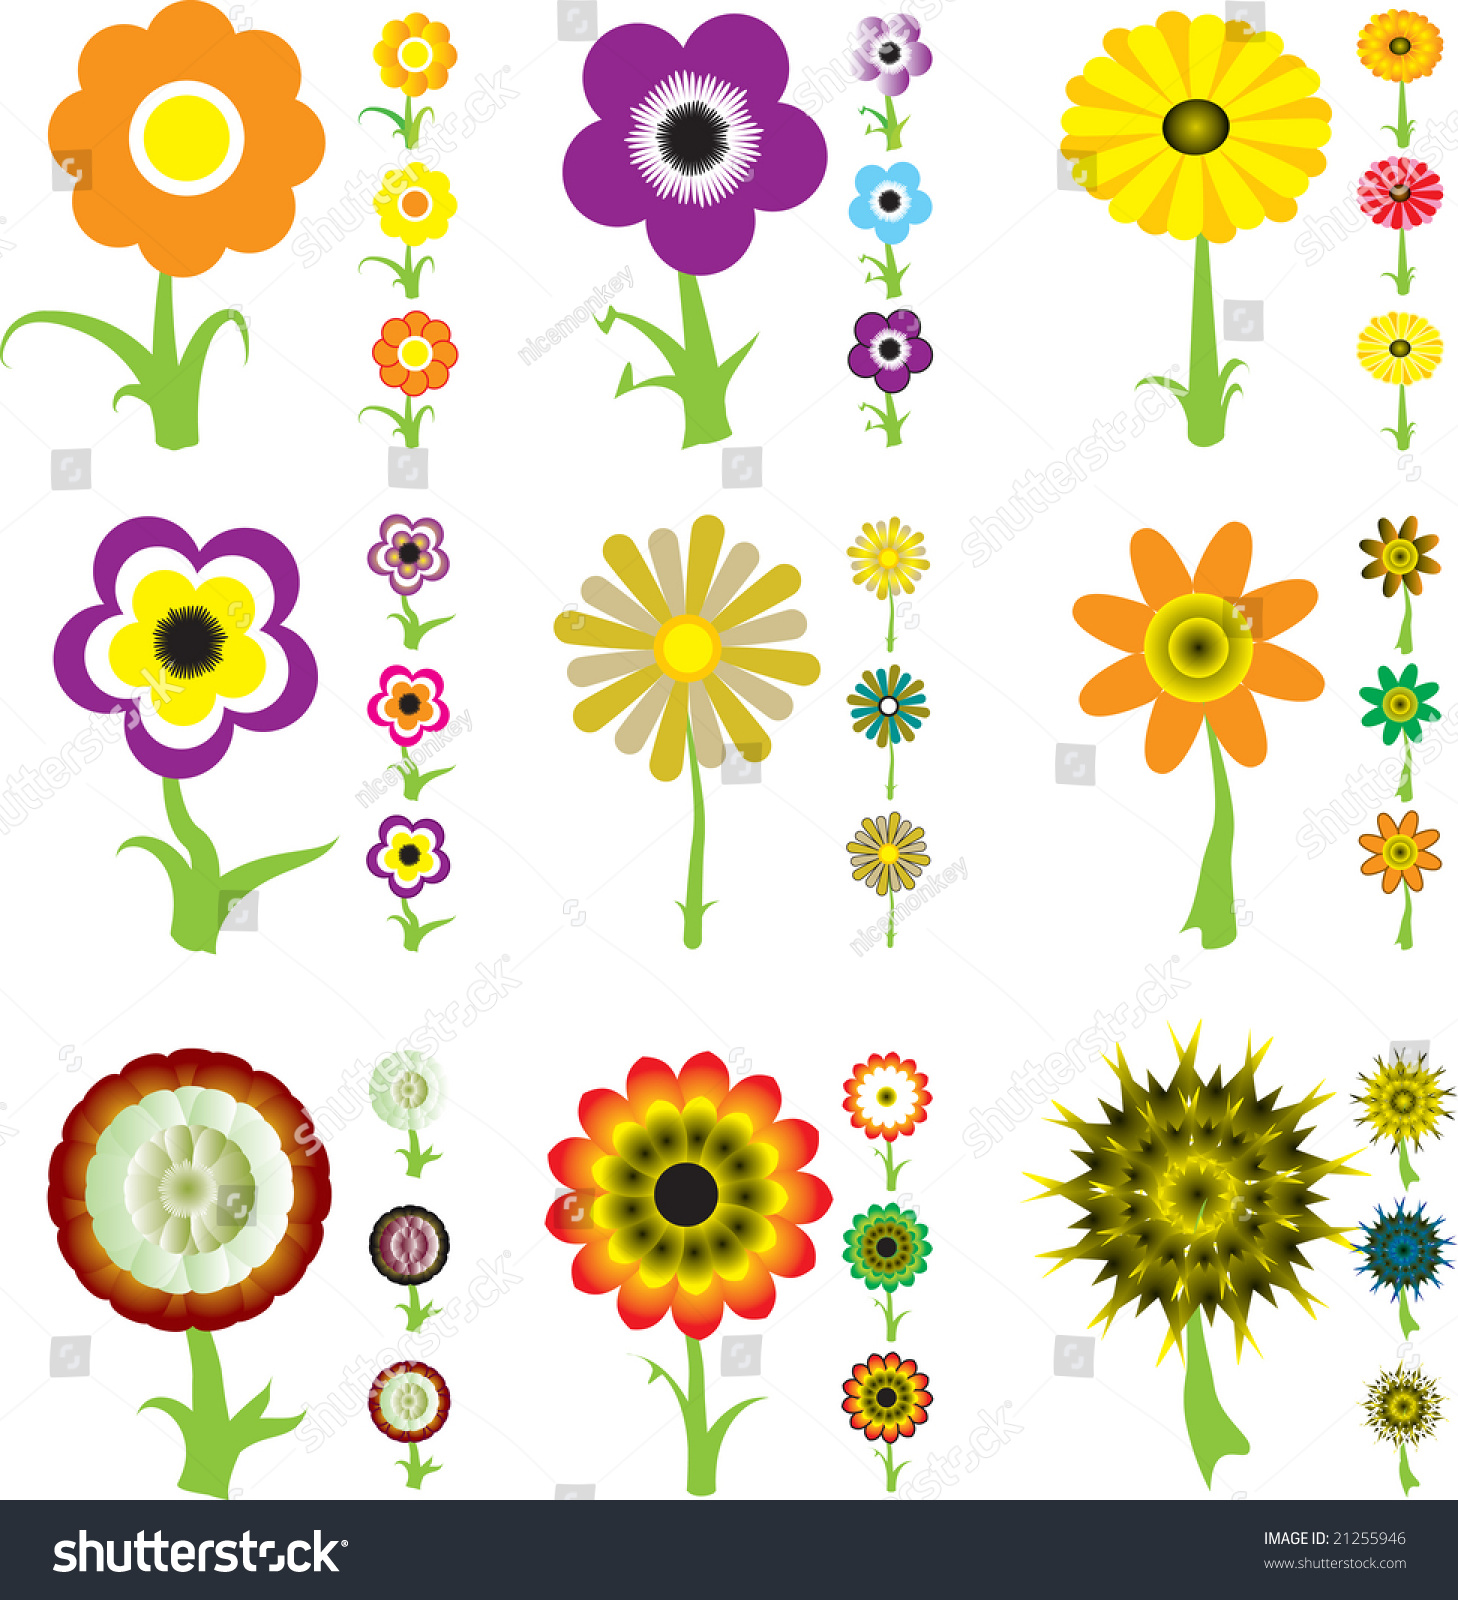 collection of floral design - photo #31